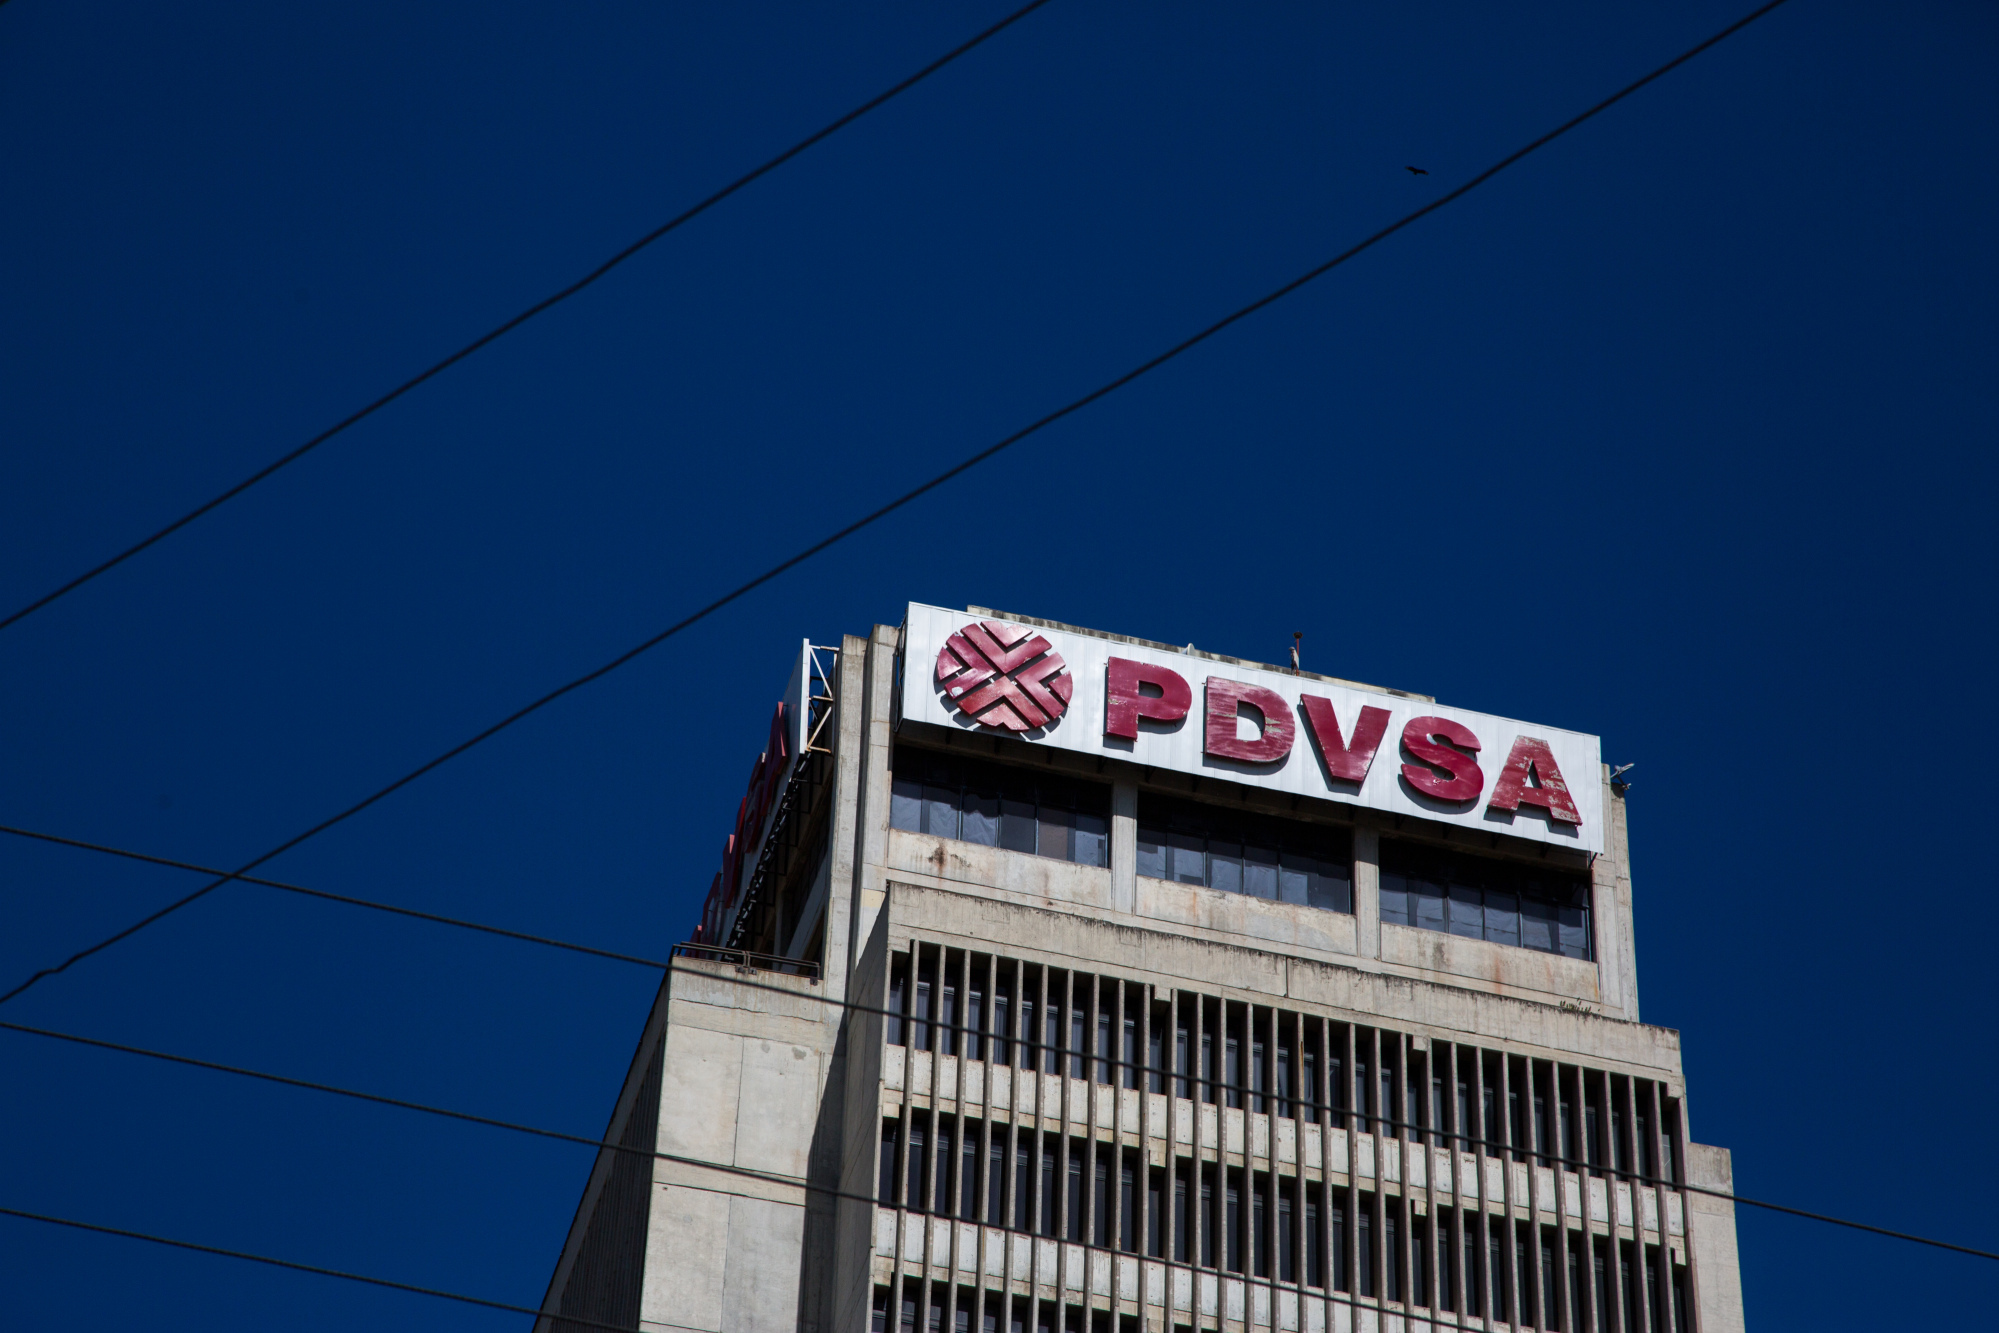 Petroleos de Venezuela SA (PDVSA) signage is displayed on a building in Puerto La Cruz, Anzoategui State, Venezuela, on Wednesday, Feb. 7, 2018. Hunger is hastening the ruin of Venezuelan's oil industry as workersgrow too weak and hungryfor heavy labor. Absenteeism and mass resignations mean few are left to produce the oil that keeps the tattered economy functioning. Photographer: Wil Riera/Bloomberg